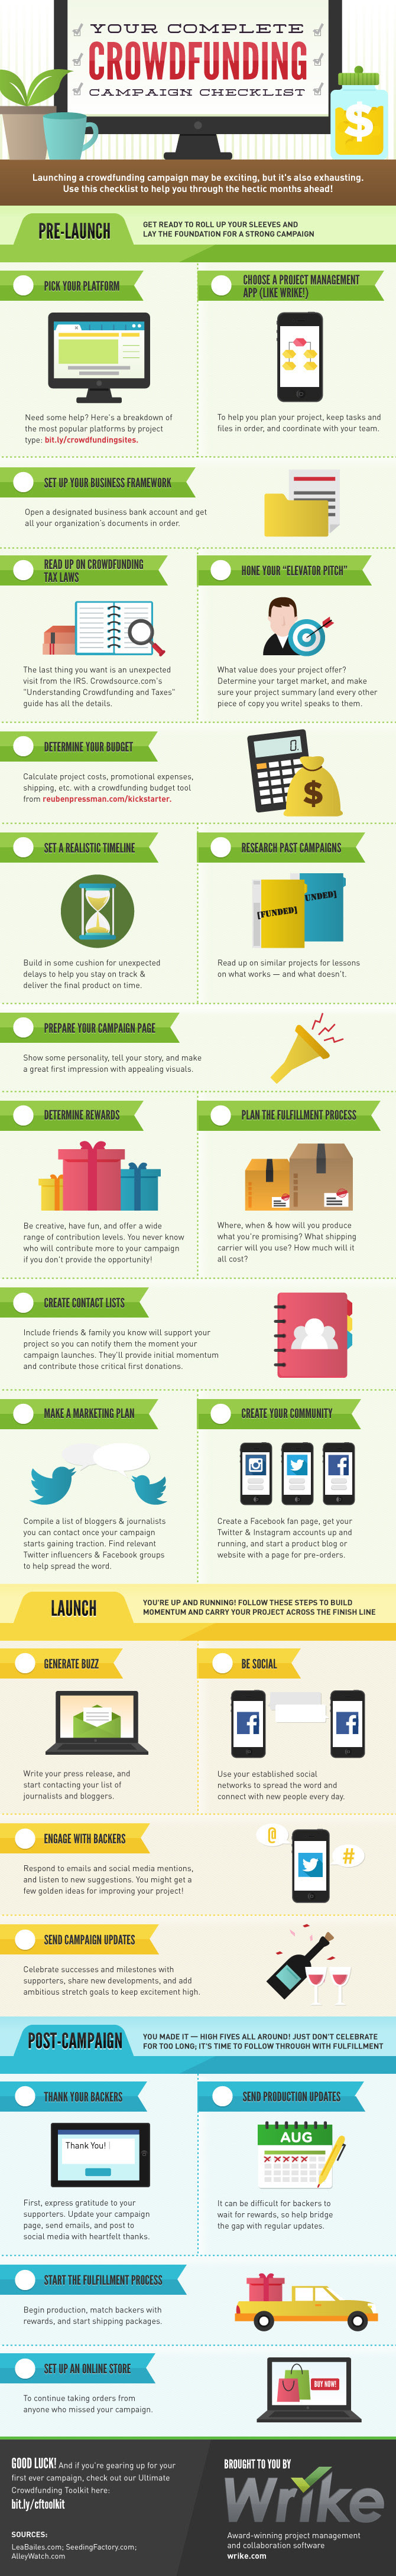 Infographic: Your Complete Crowdfunding Campaign Checklist #infographic